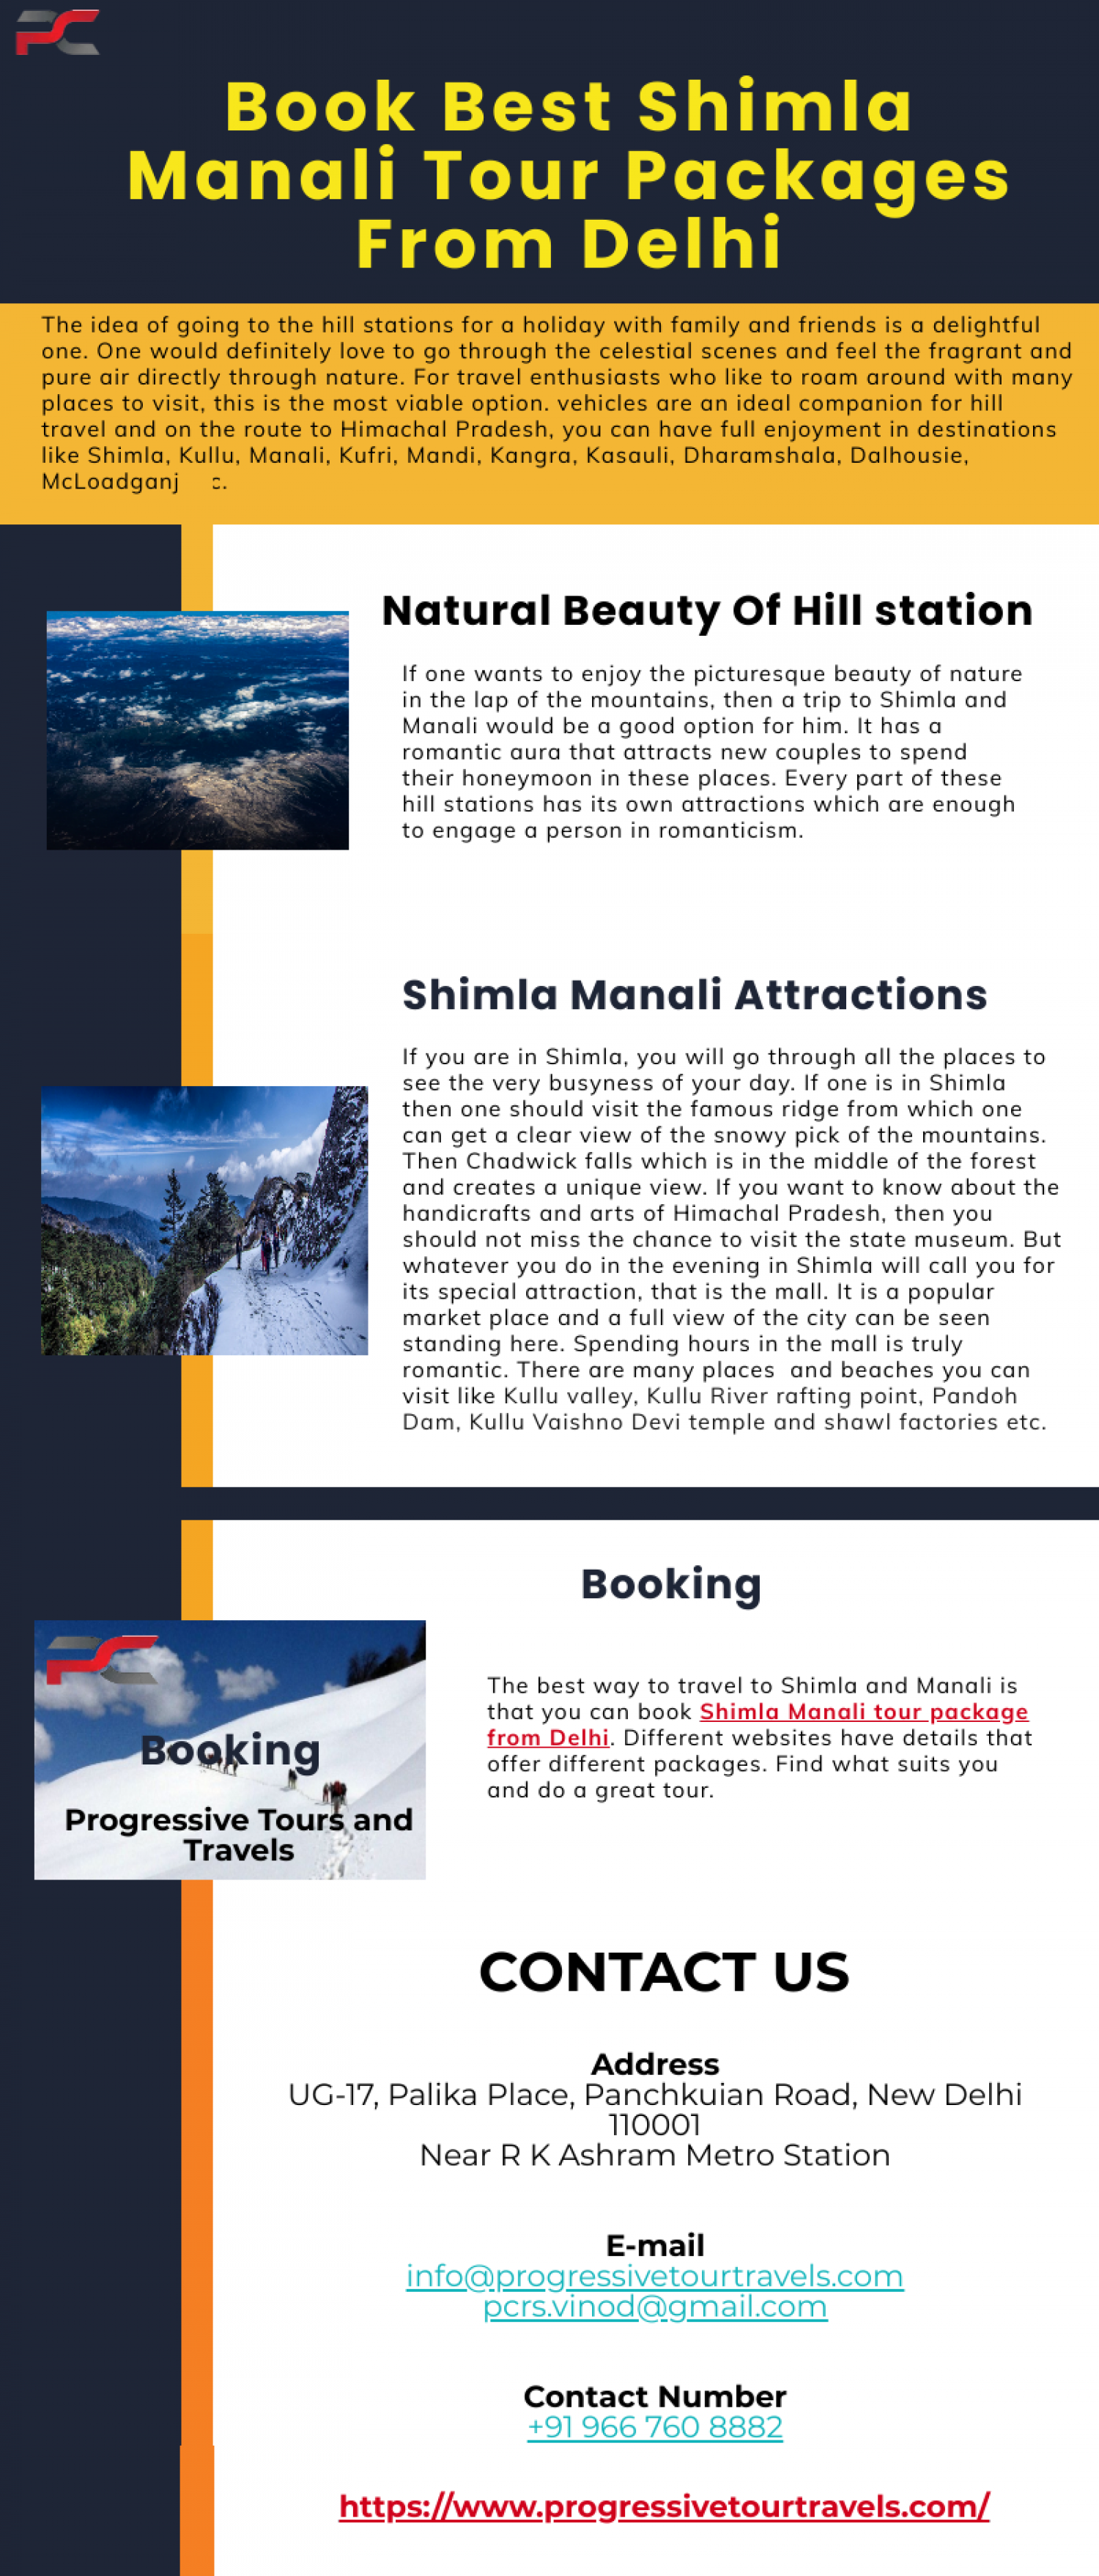 Book Best Shimla Manali Tour Packages From Delhi  Infographic